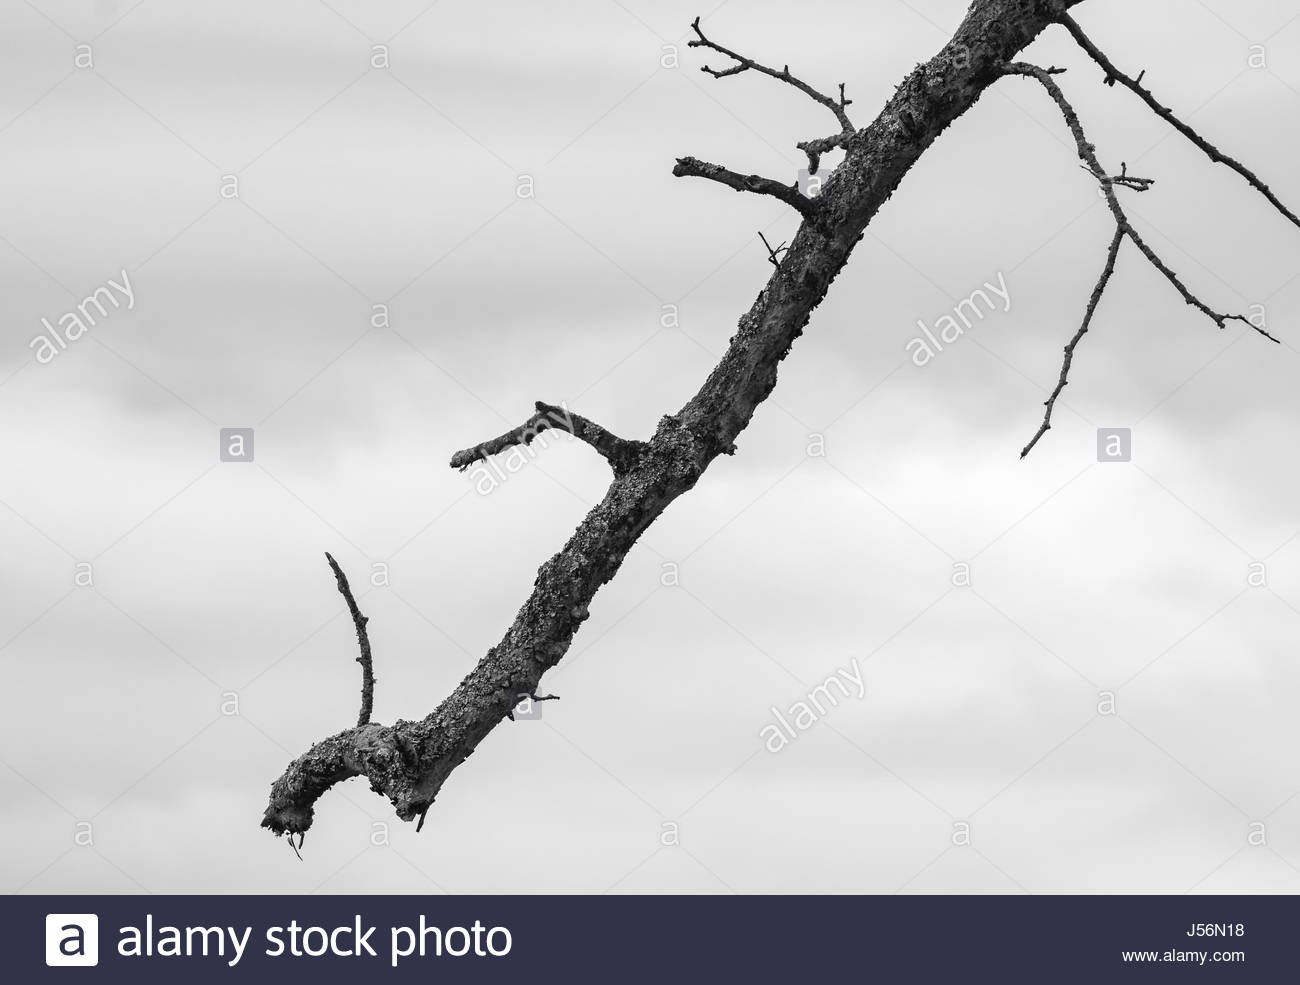 Single tree branch hanging down with cloudy sky in the background. Black and White image. - Stock Image